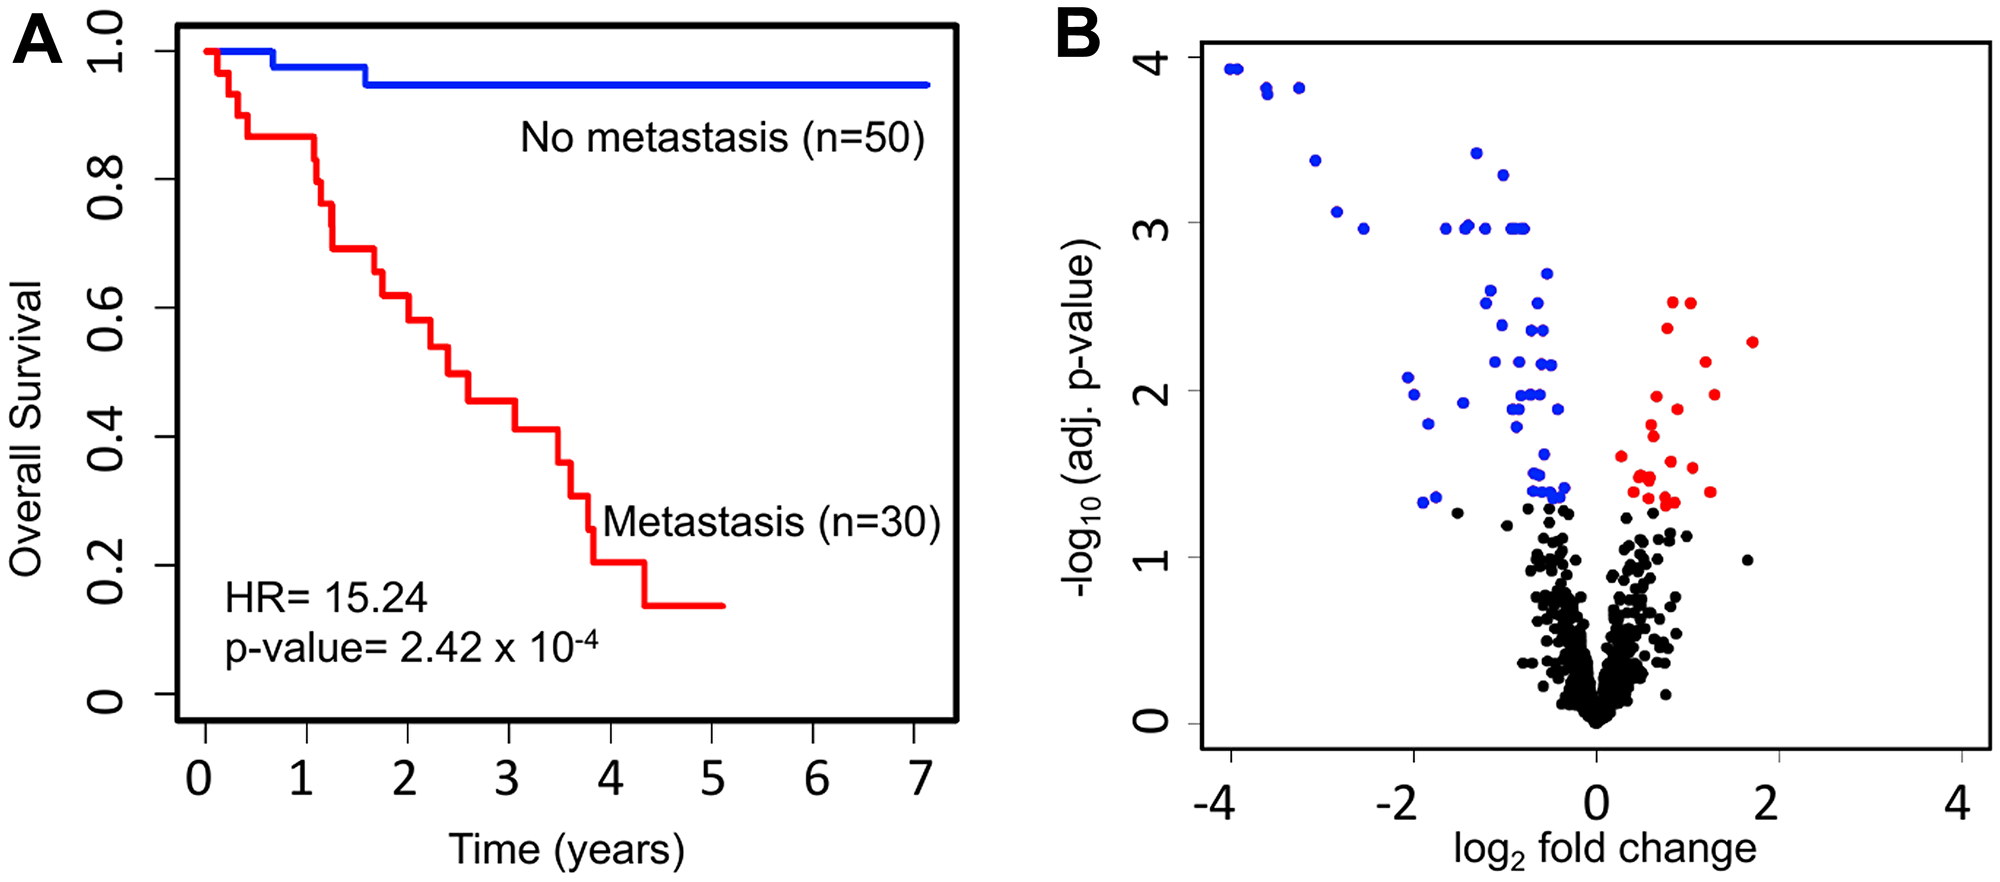 Survival and miRNA expression differences between patients who ever vs. never developed metastatic UM.